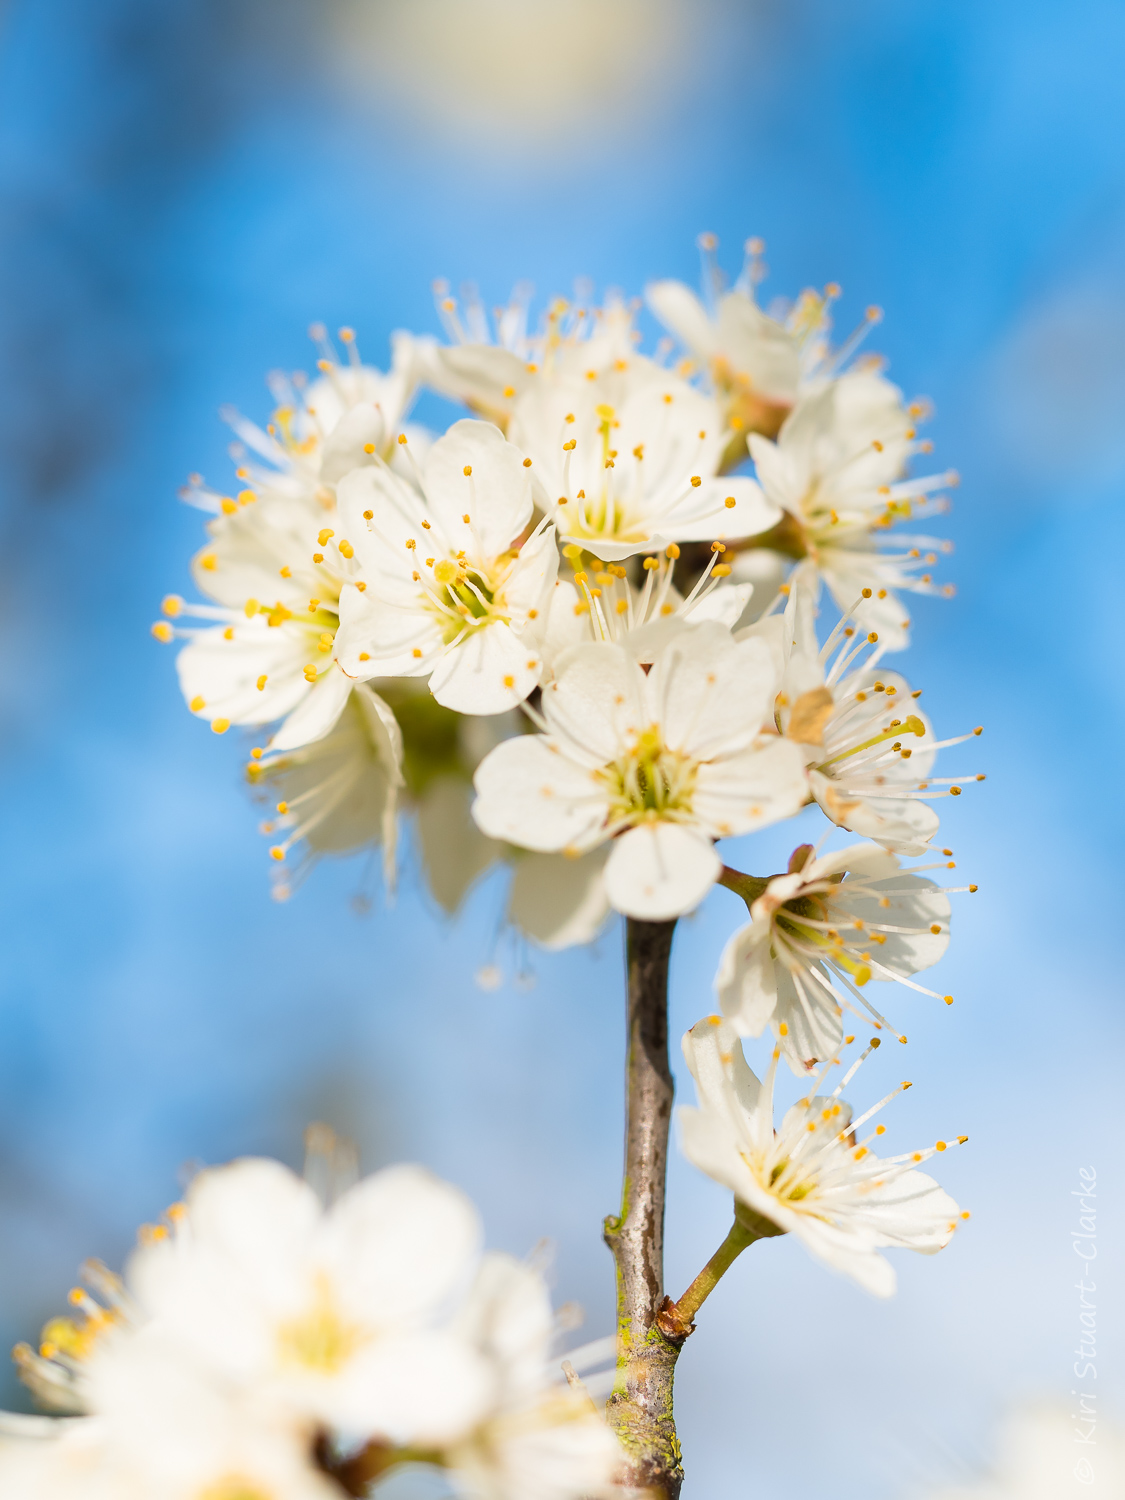 Blackthorn blossom spray